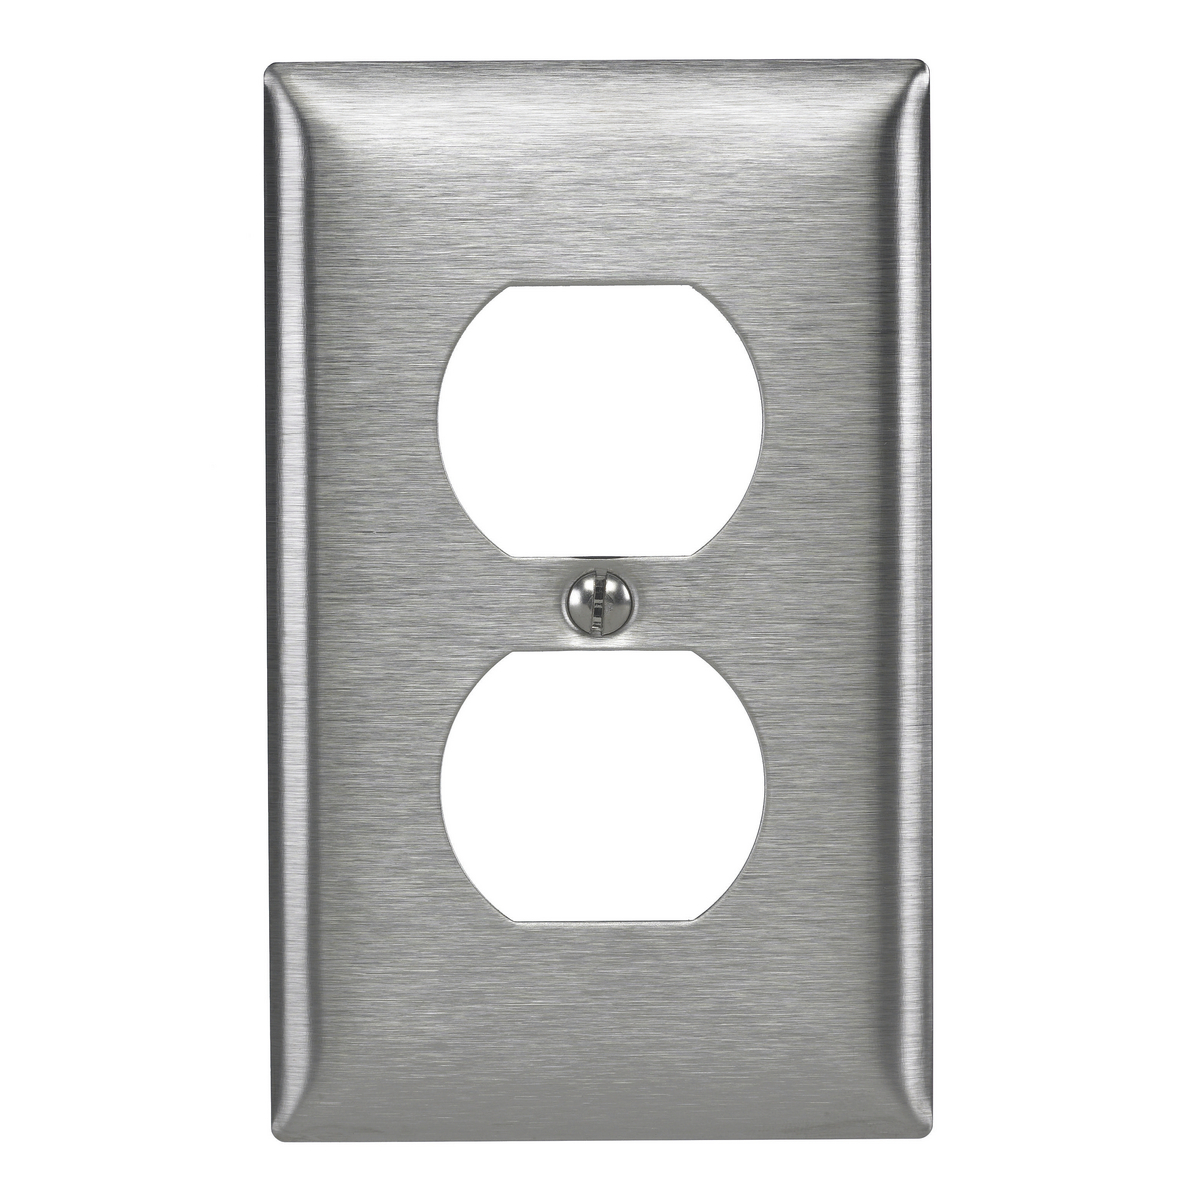 Hubbell SS8L 1-Gang Stainless Steel 1-Duplex Receptacle Strap Mount Wallplate